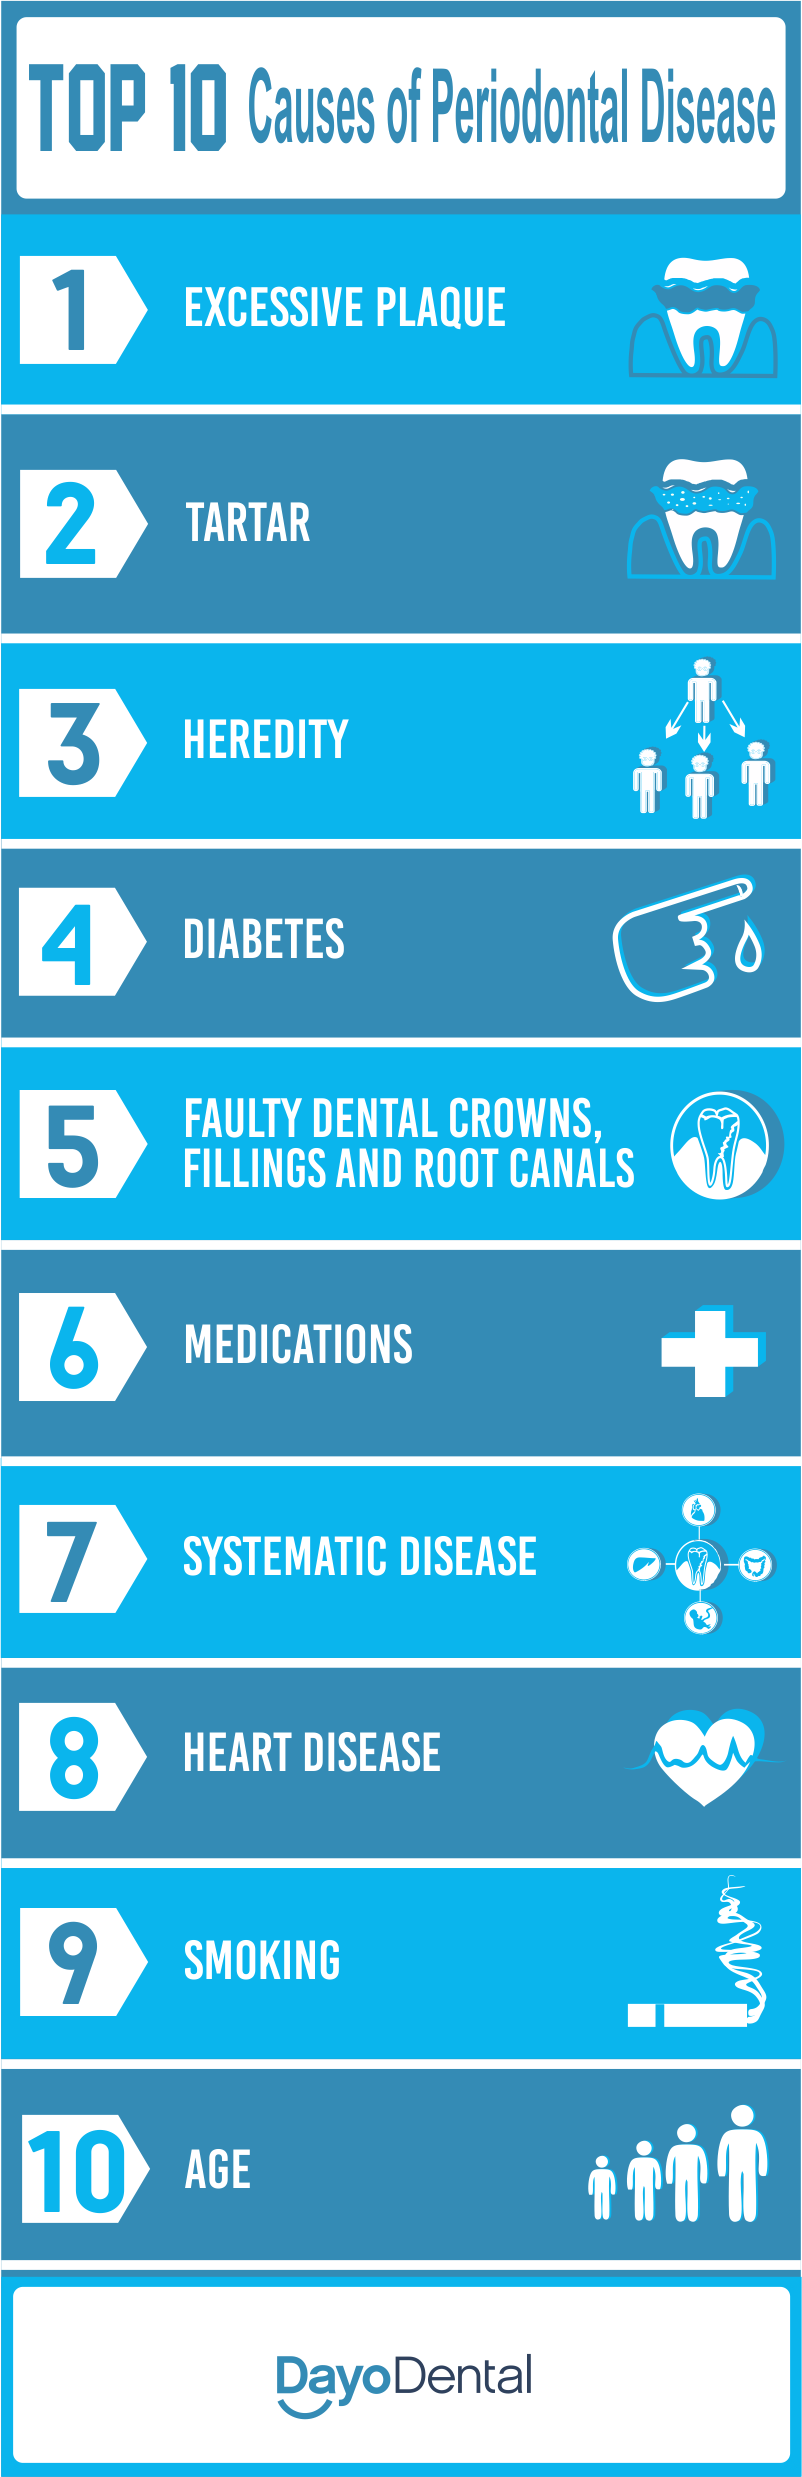 Causes of periodontal disease - Top causes of periodontitis